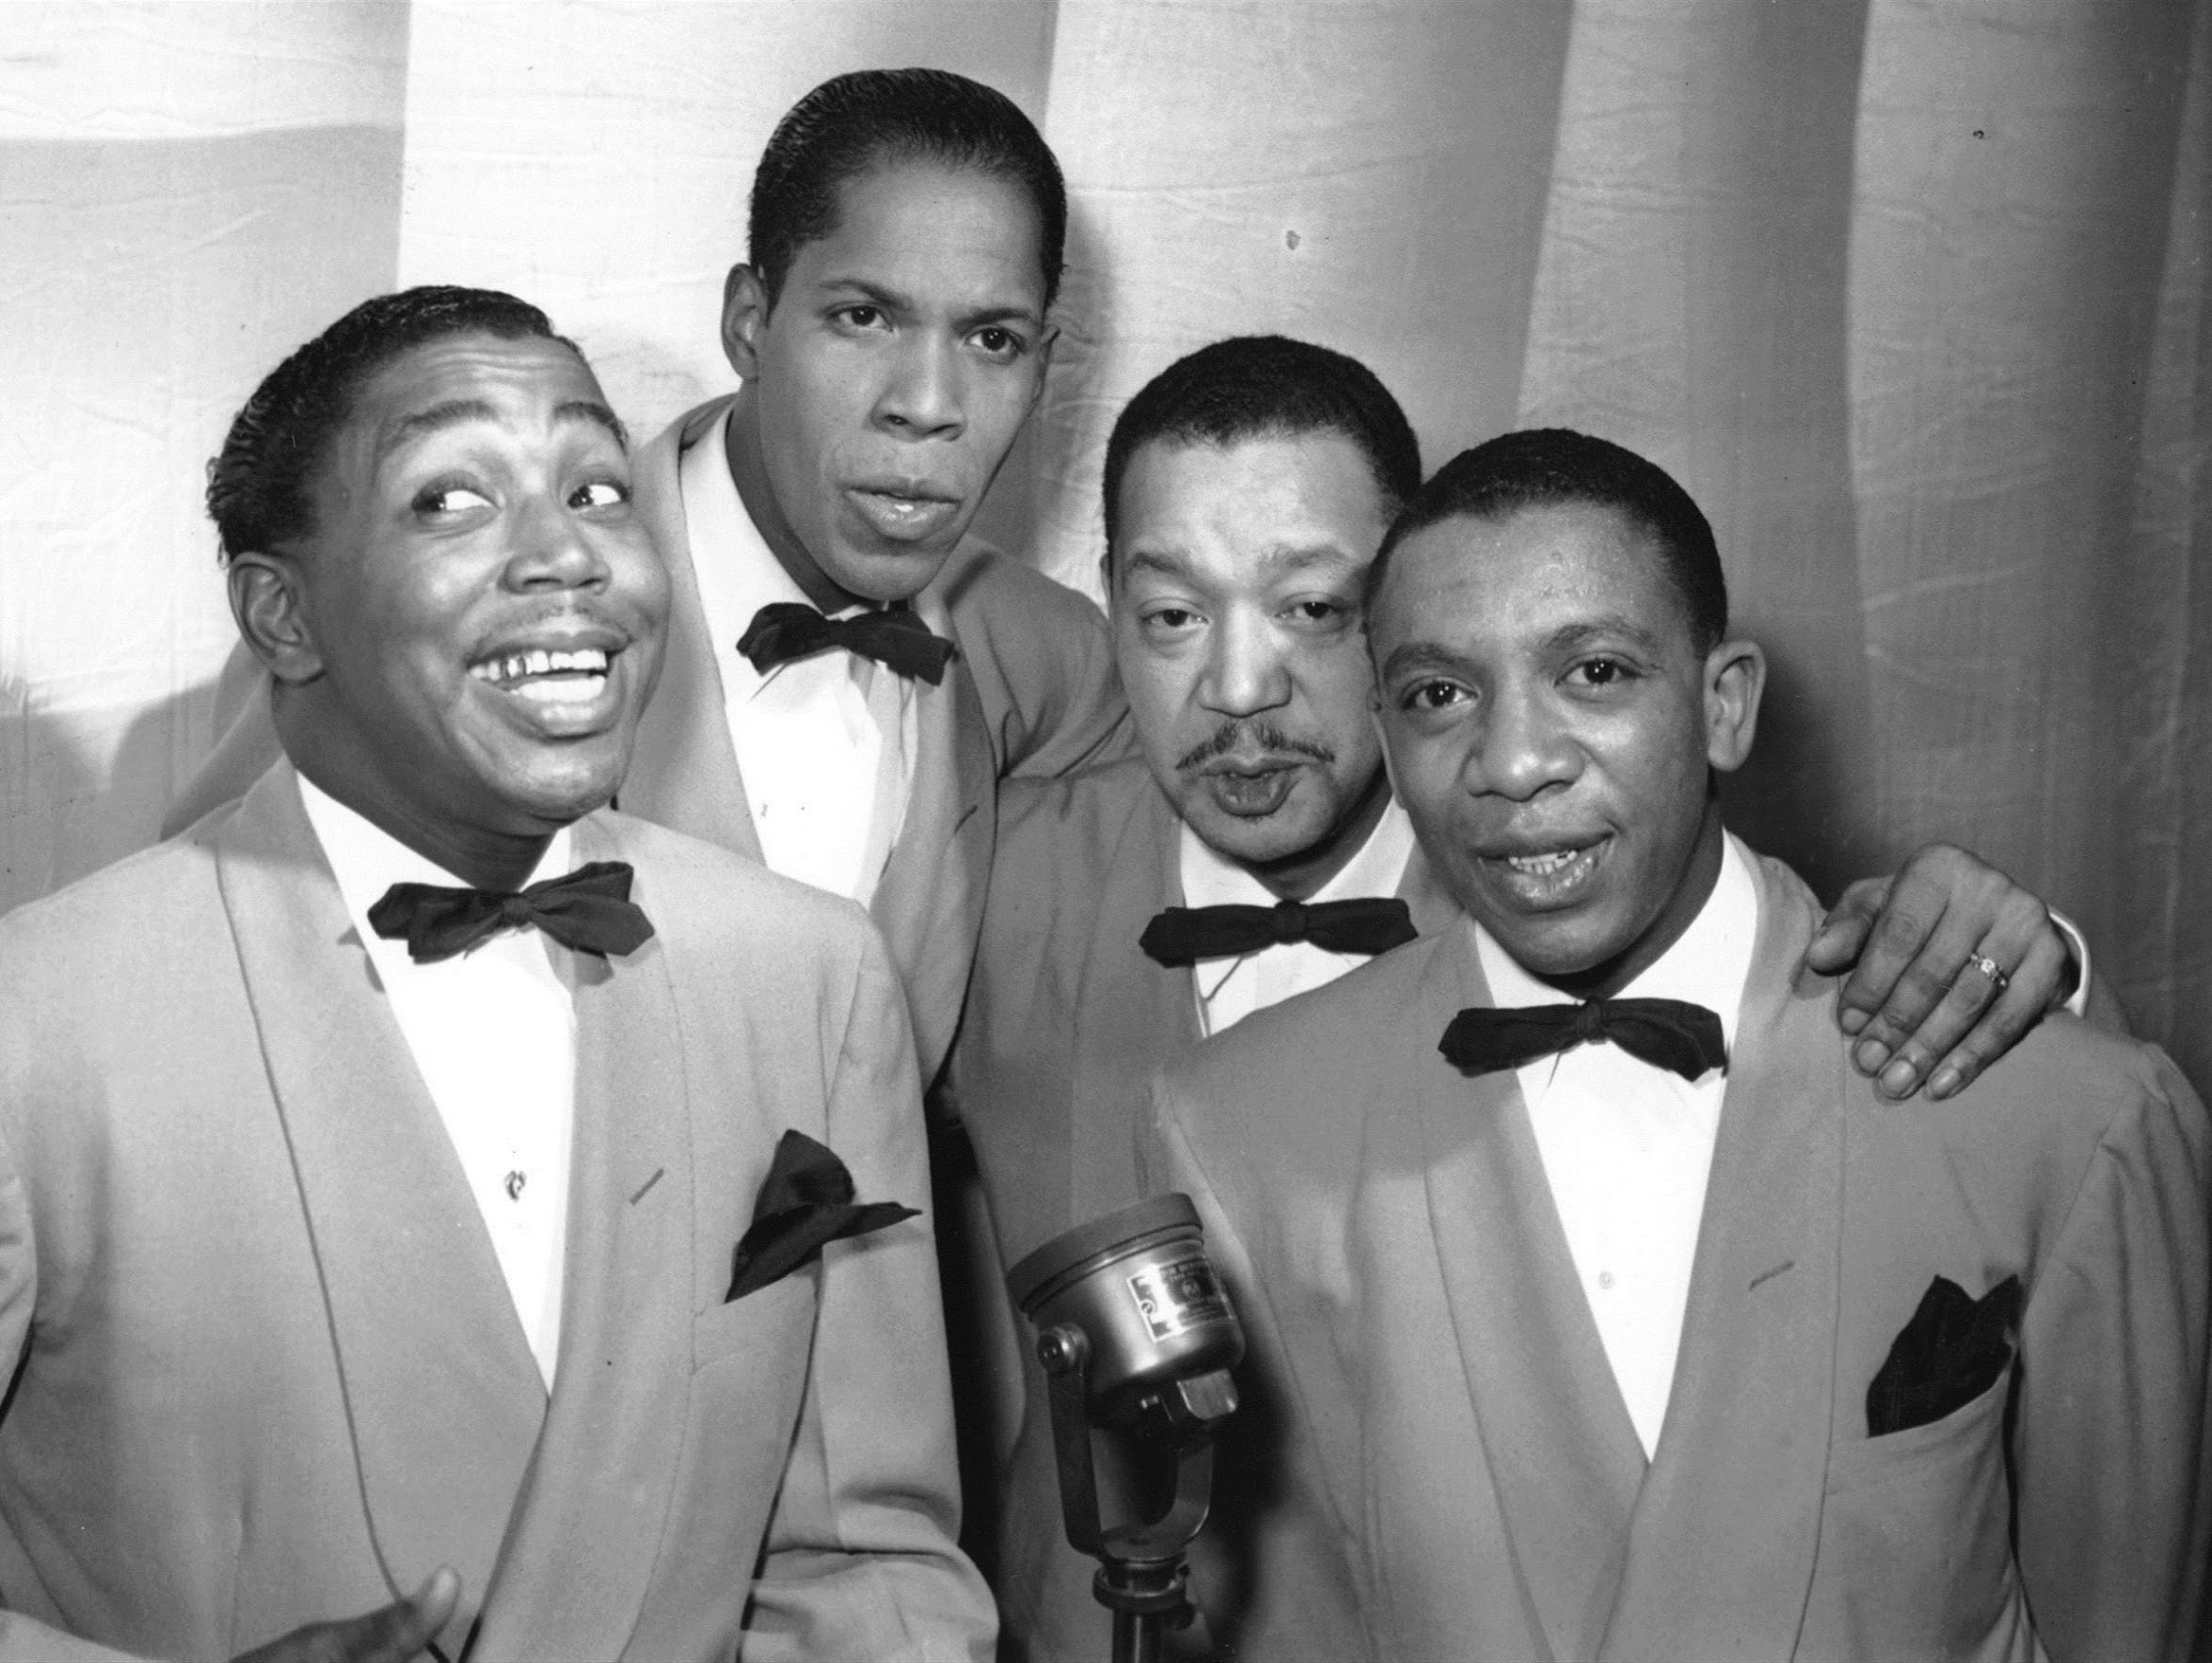 Charlie Fuqua, right, is pictured with the Ink Spots